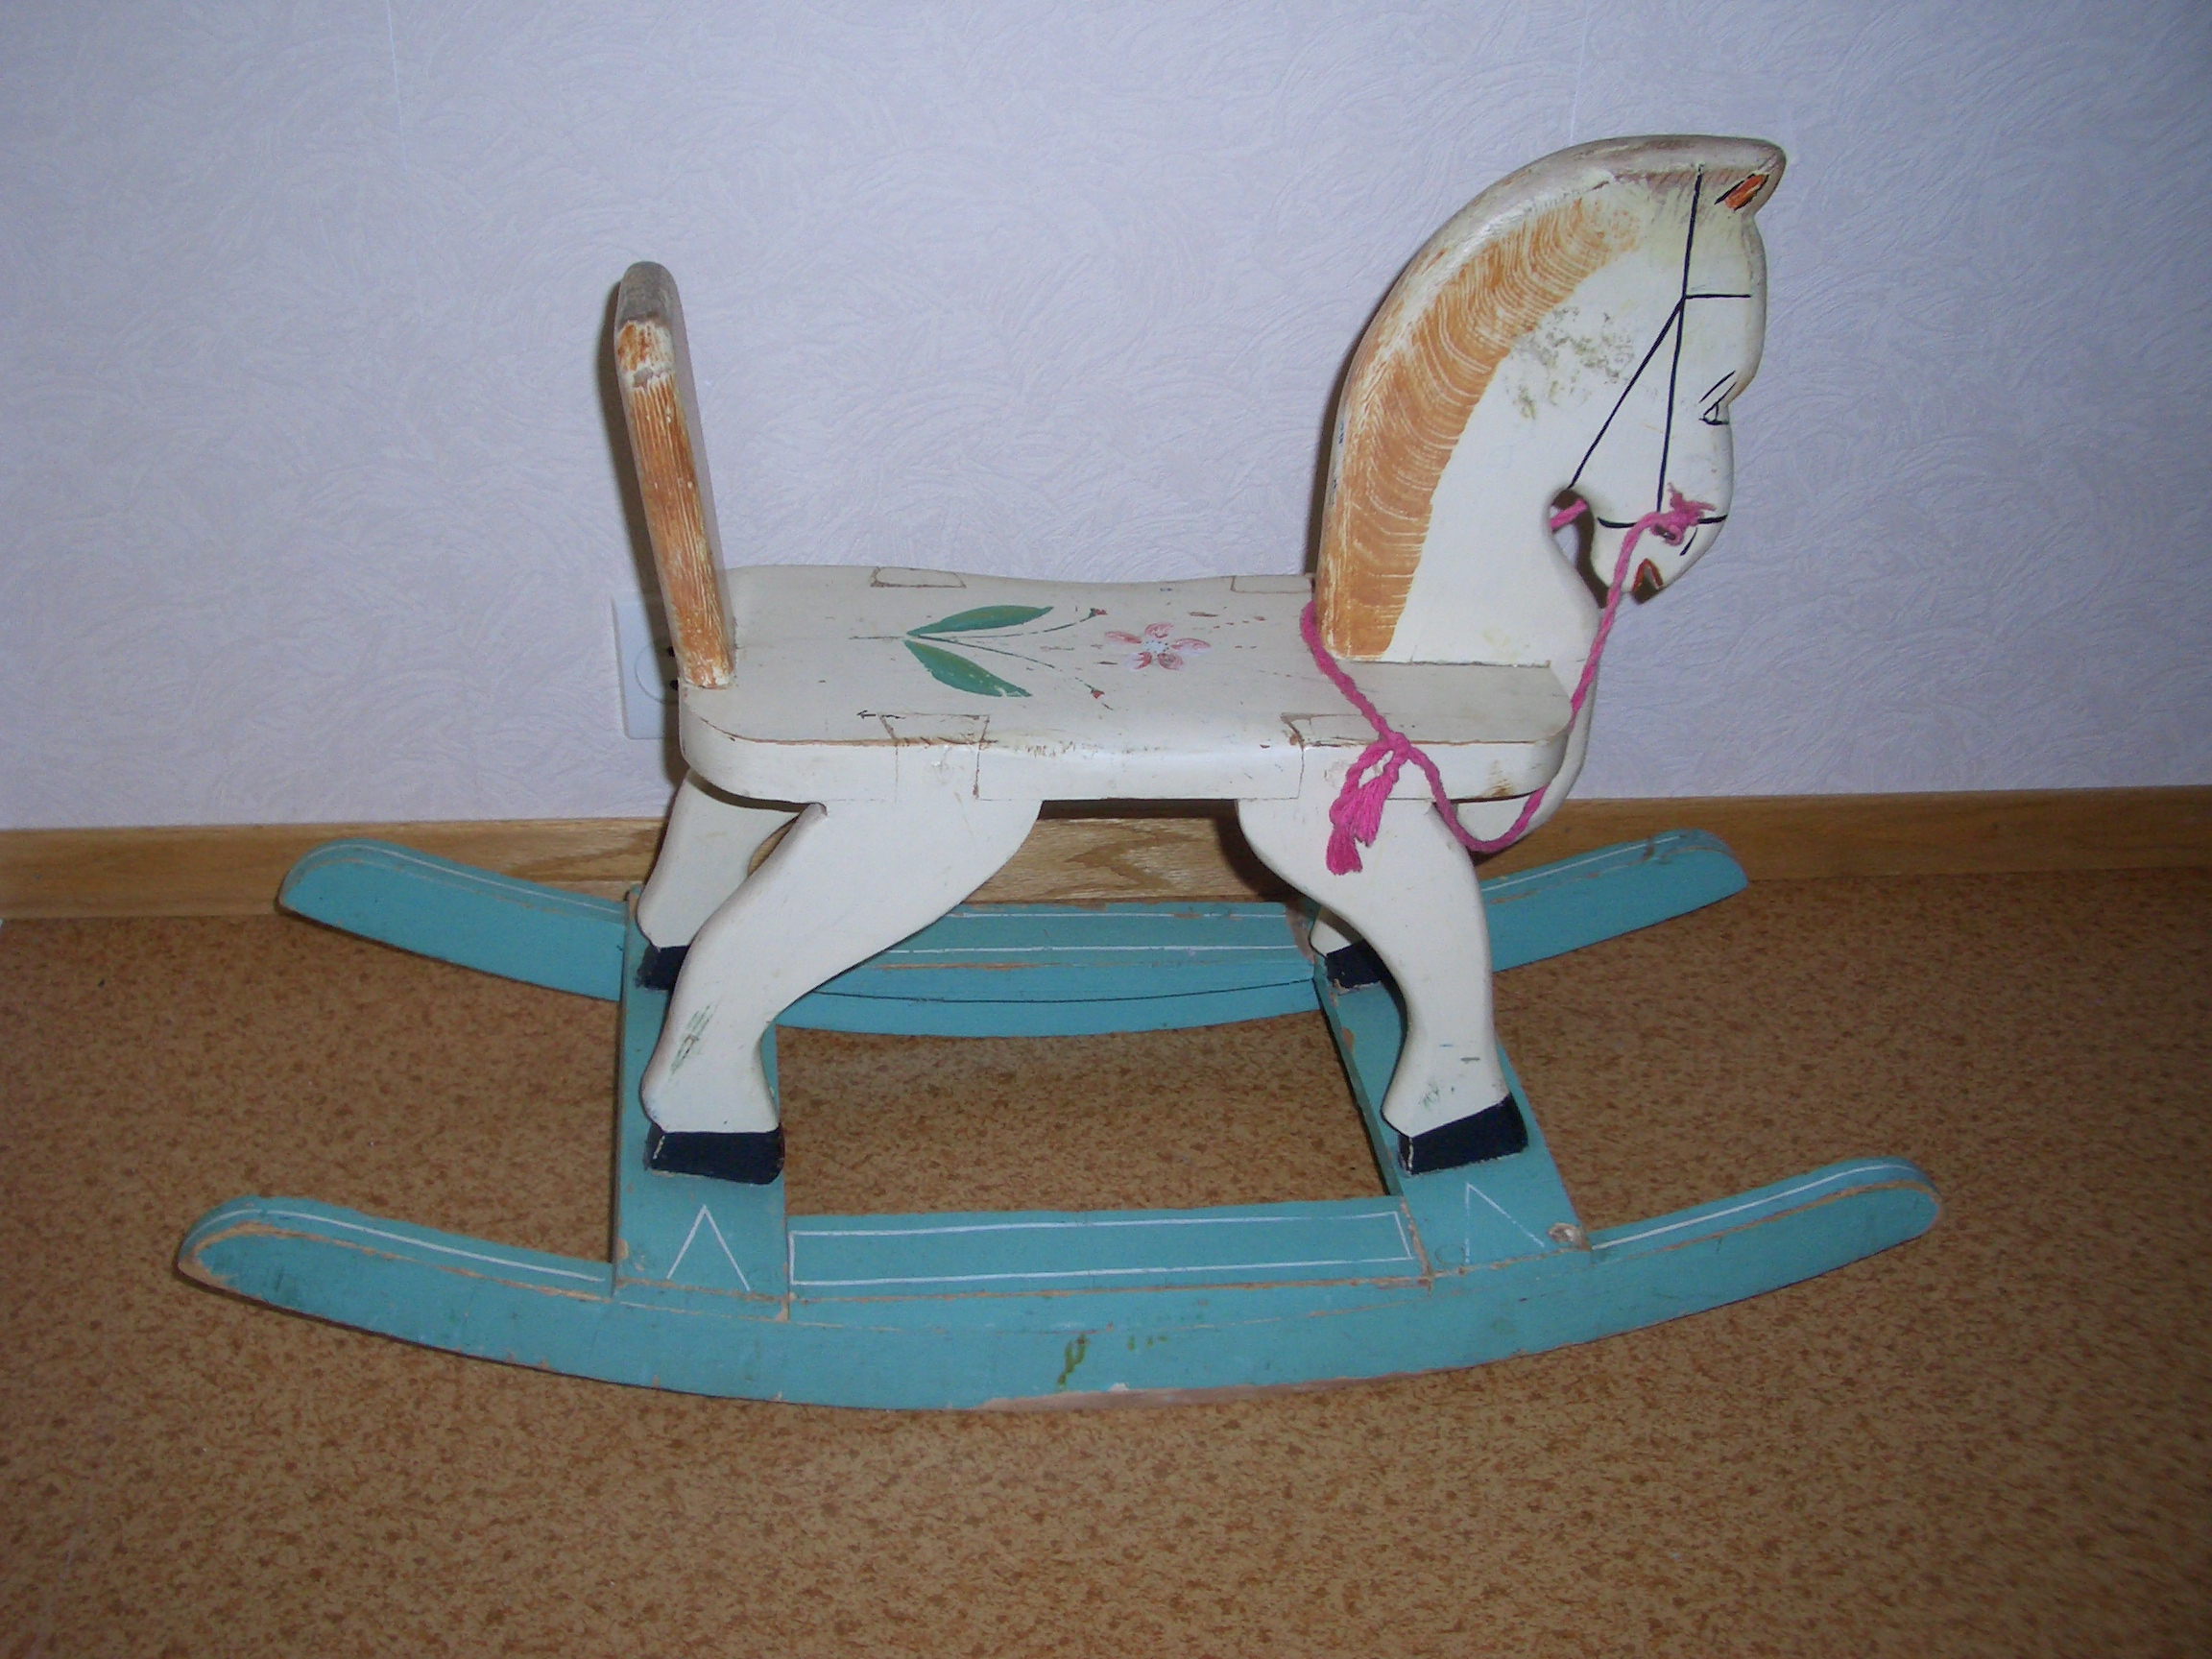 diy rocking chair kit big chairs for sale download free wooden horse plans